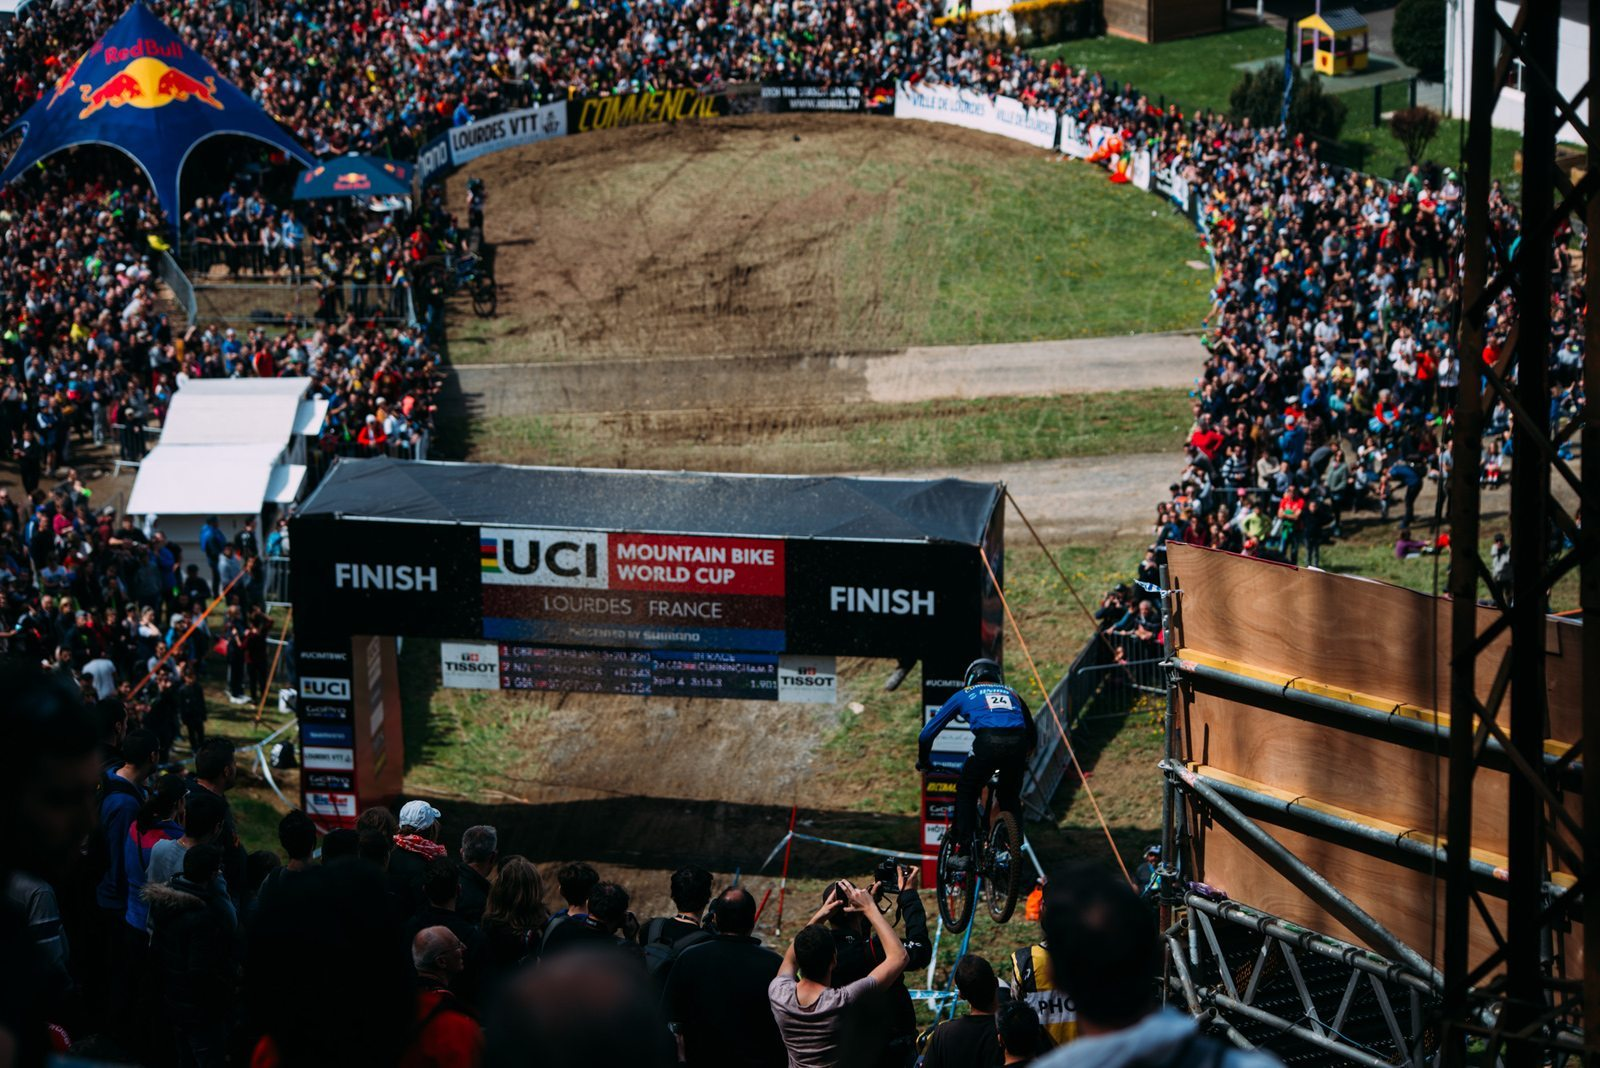 Entry to the finish arena; photo by Klemen Humar